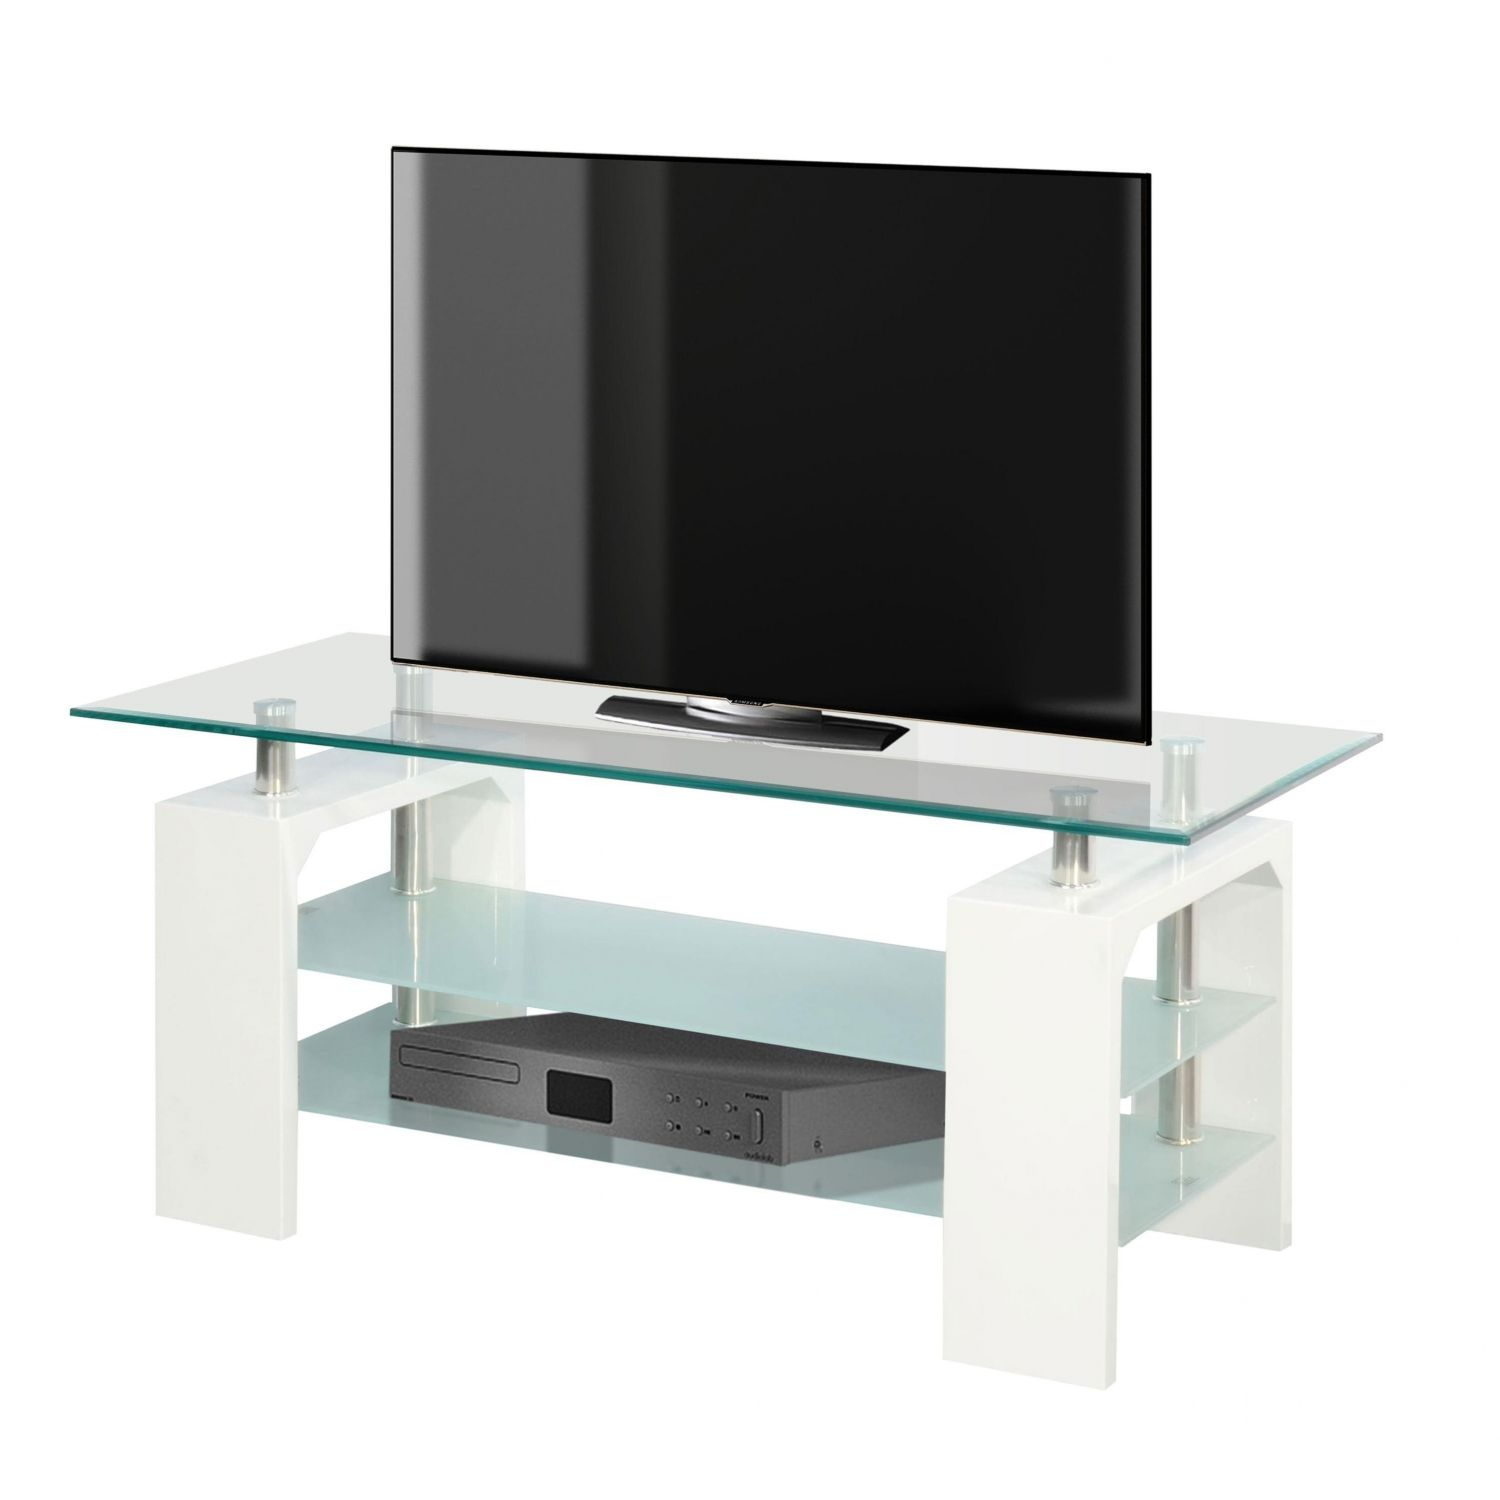 Mesa tv econ mica en blanco y cristal 110 cm for Mesa para tv mercadolibre